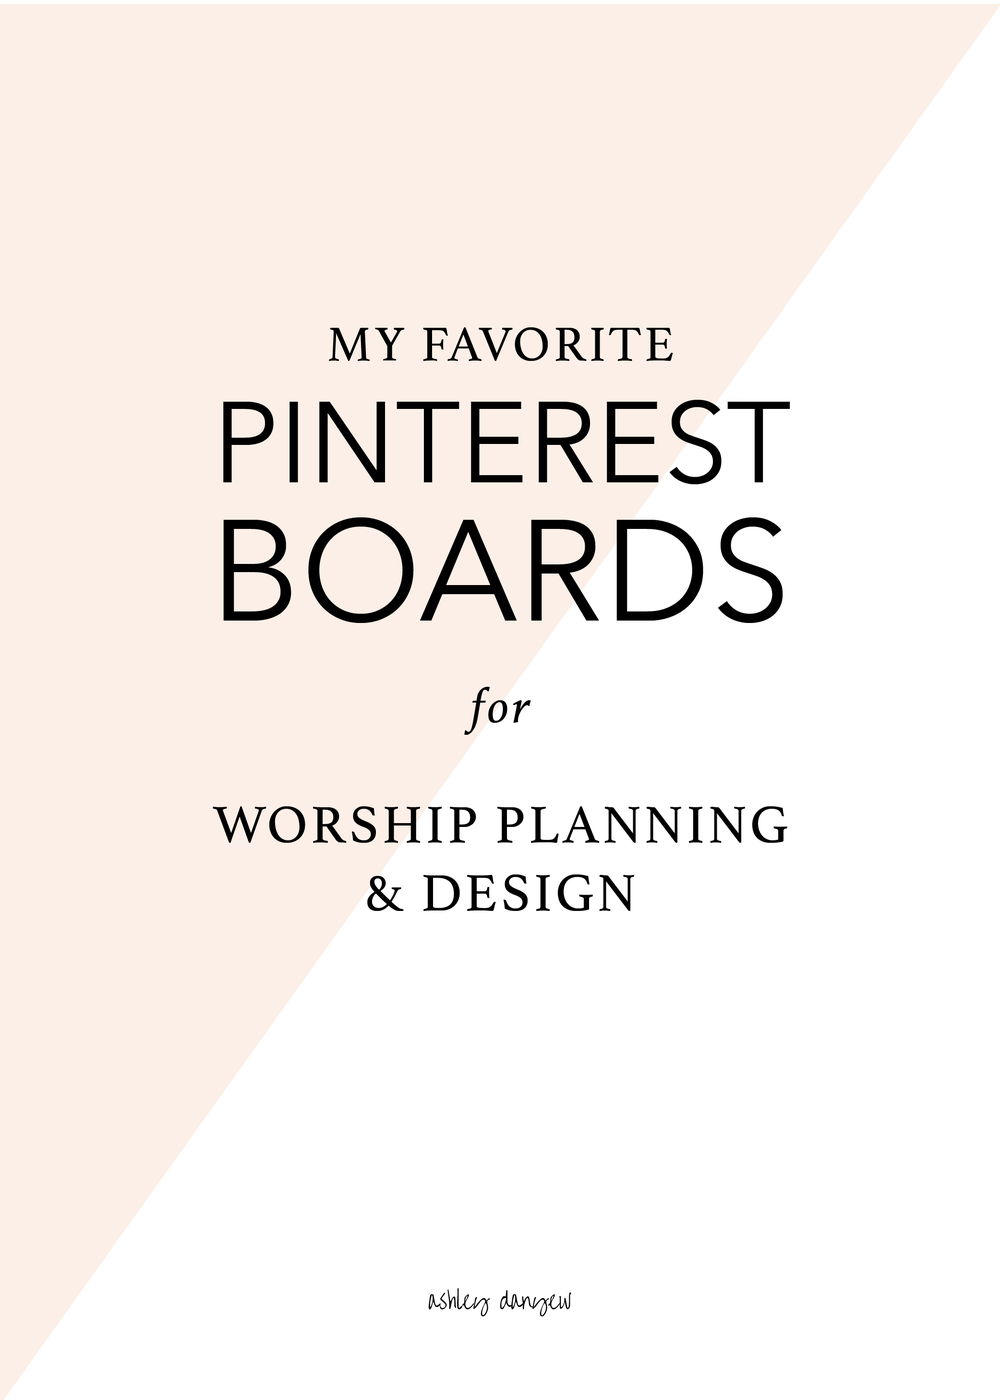 My-Favorite-Pinterest-Boards-for-Worship-Planning-and-Design-01.png